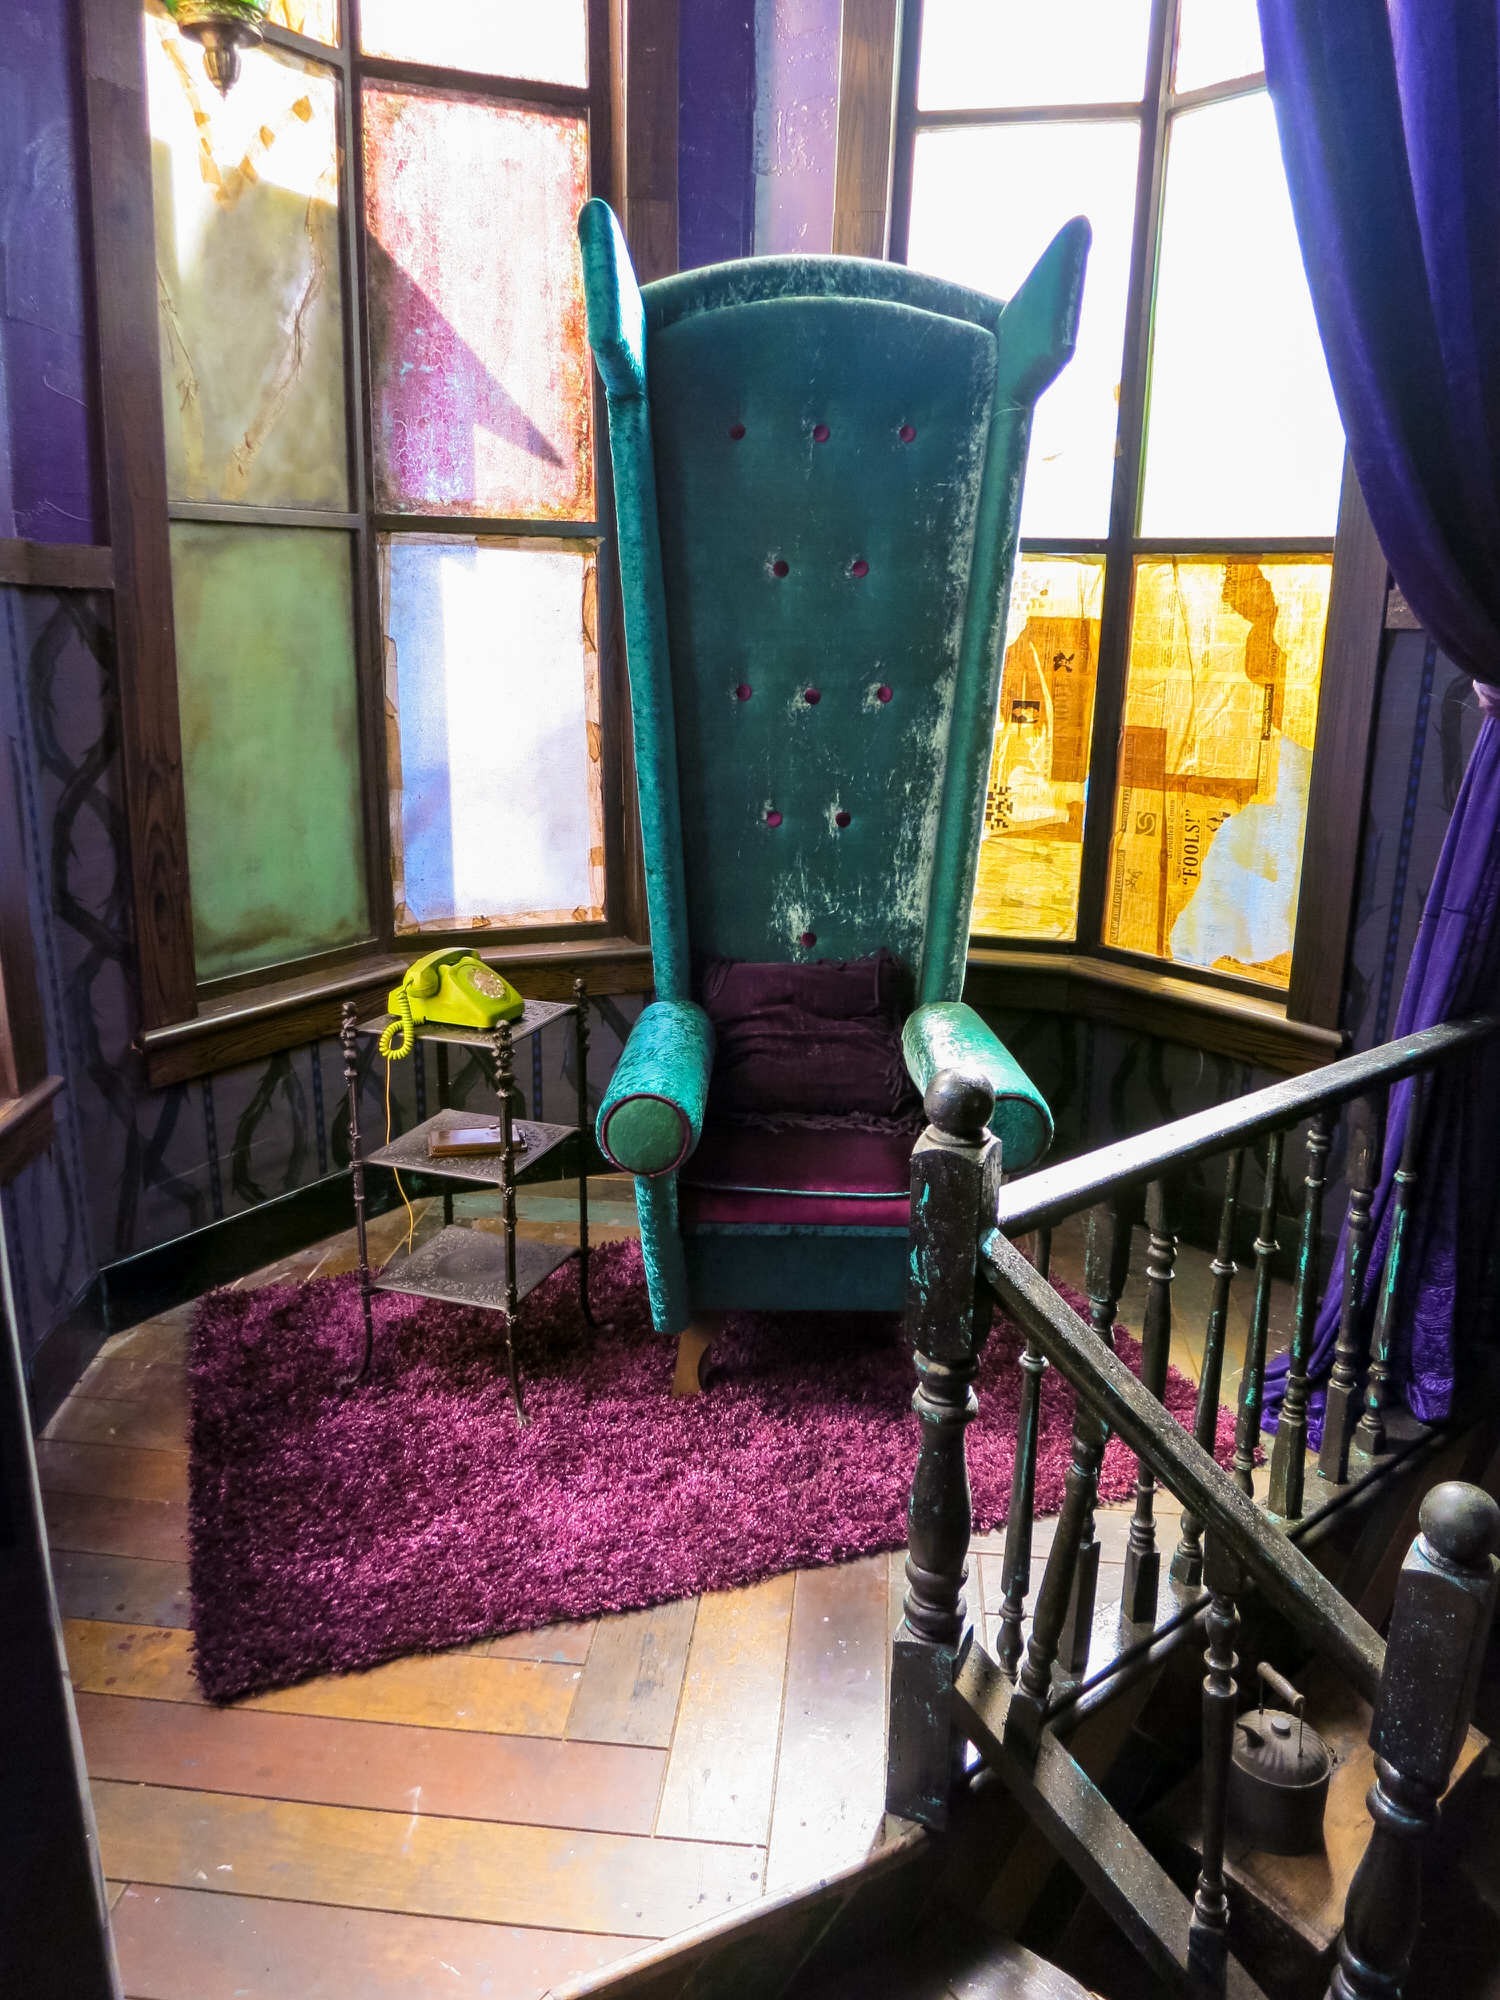 We wanted to give Maleficent one artifact from her former, magnificent life. The director suggested maybe her throne. Unfortunately the throne from the original animation was a 12 foot wide, 6 ton stone bat. Not a practical thing to carry into exile. So I tried to evoke the idea of that throne with a ridiculous green and purple wingback chair she might have confiscated from the Isle's Bazaar.